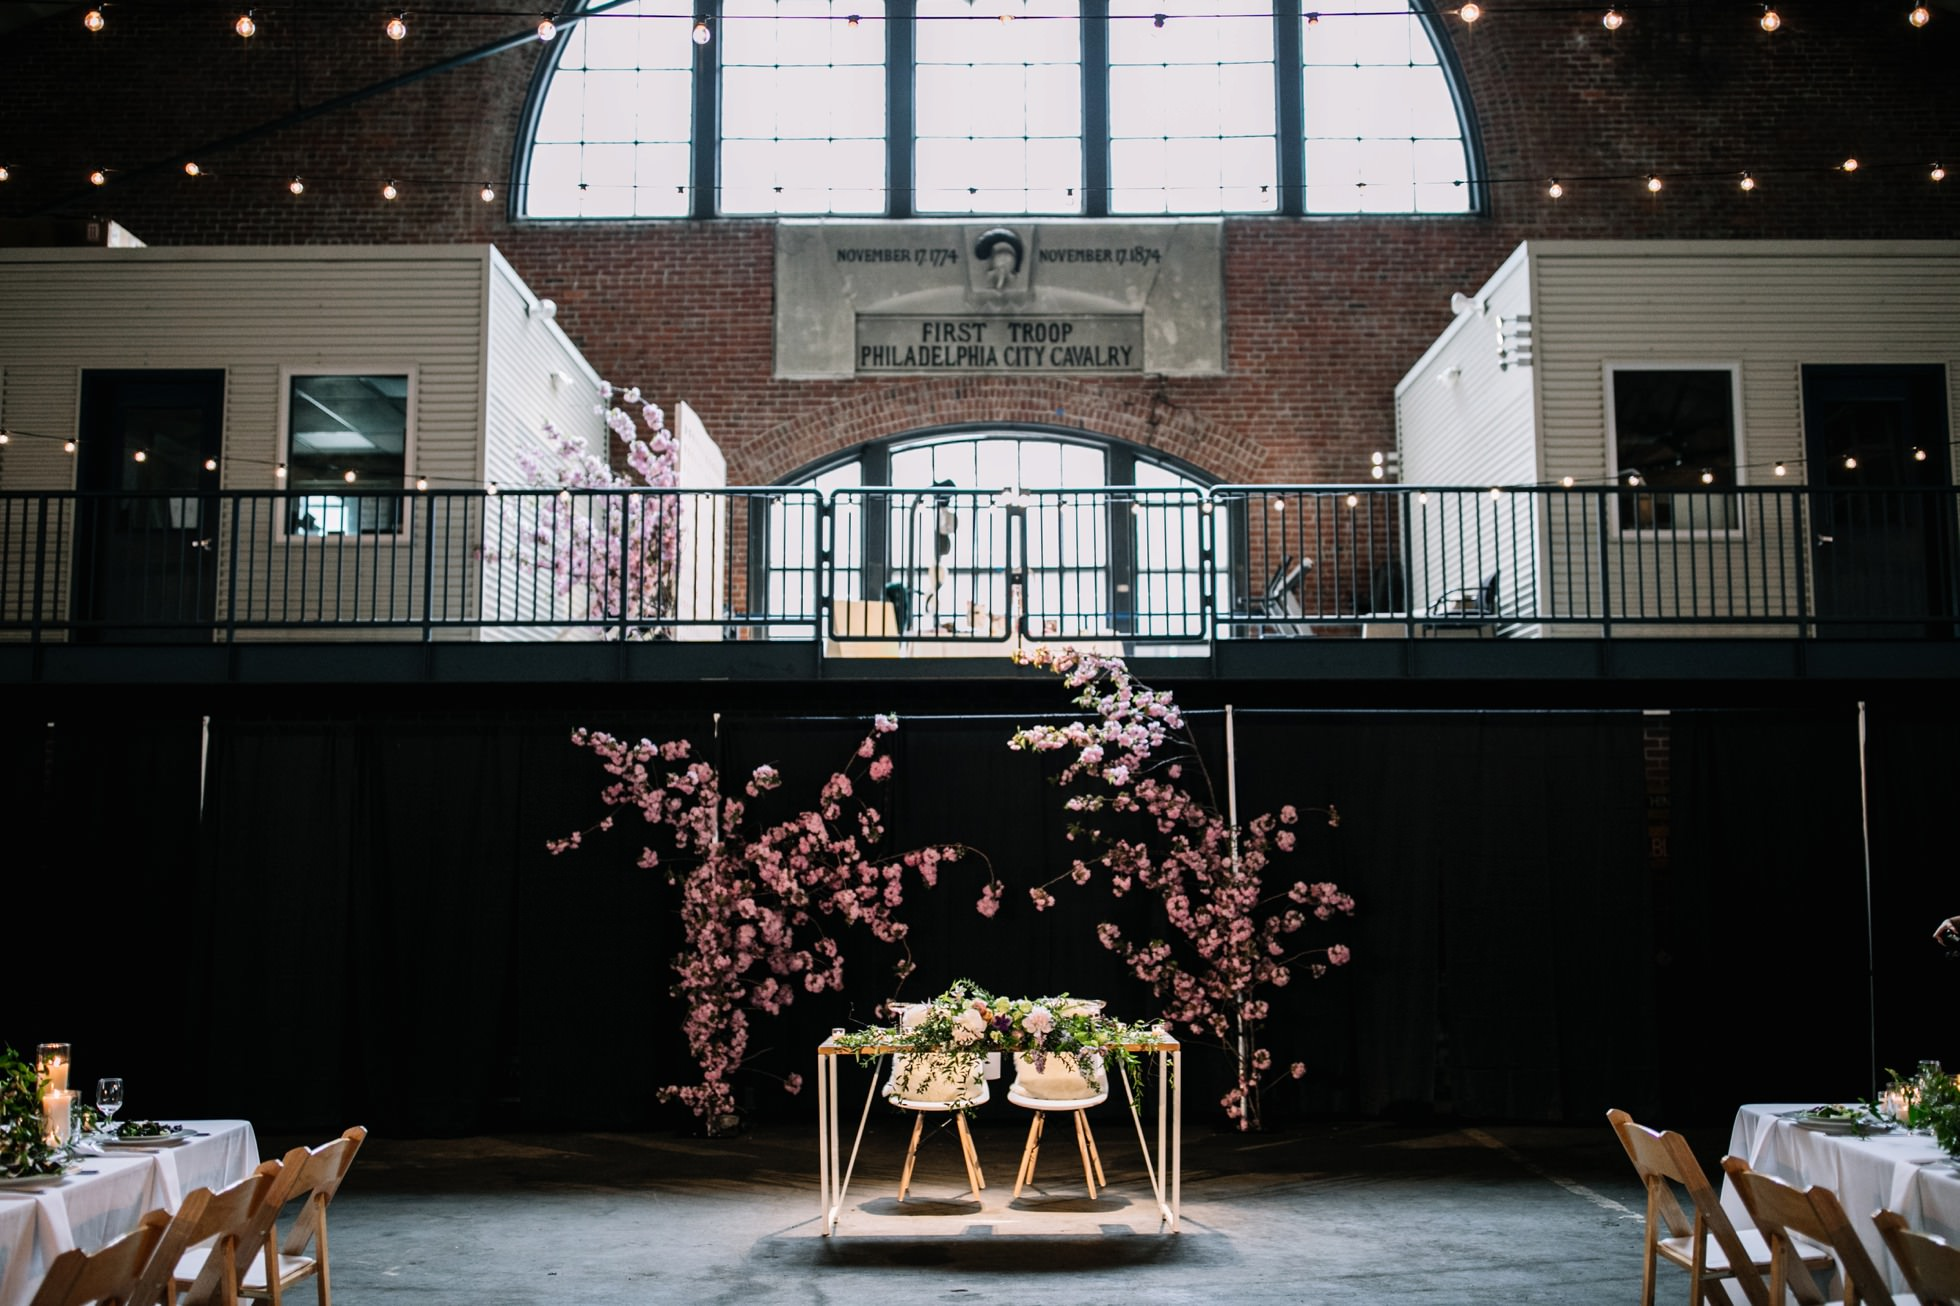 Best Unique Pa Ny Nj Wedding Venues 23rd St Armory Industrial Warehouse: Unusual Wedding Venues New Jersey At Reisefeber.org